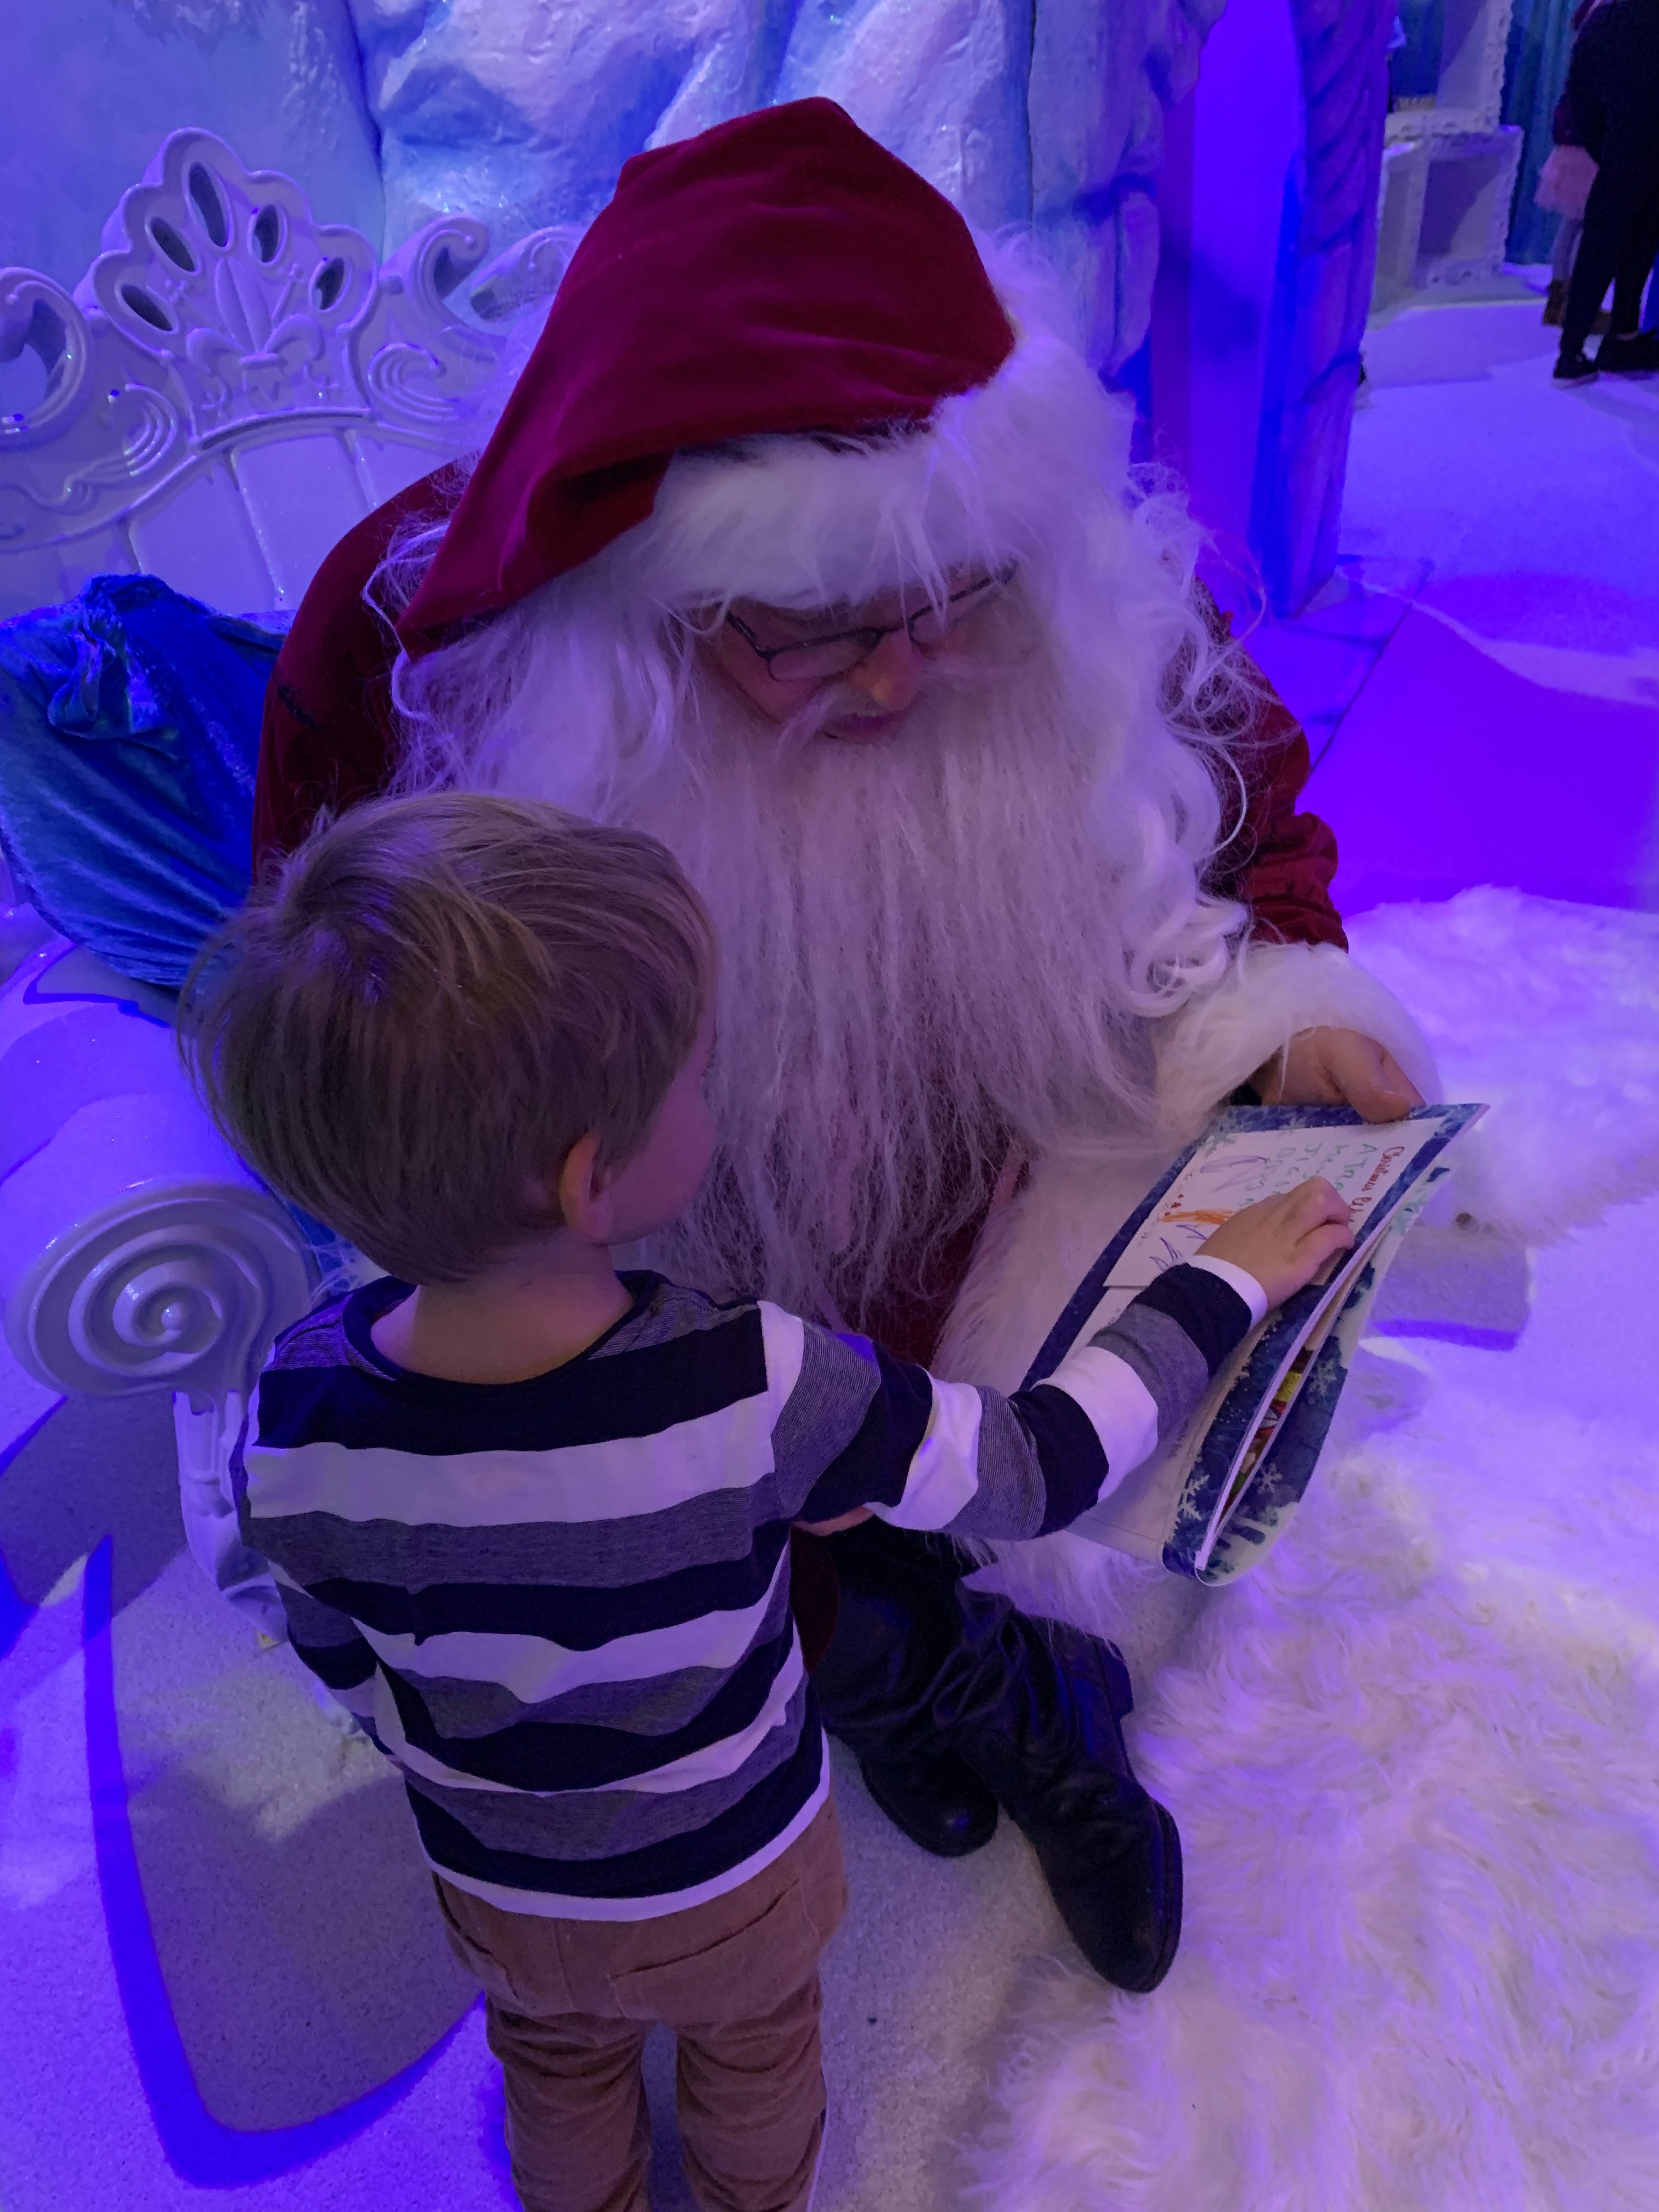 Toddler and Santa at Bluestone's Christmasland